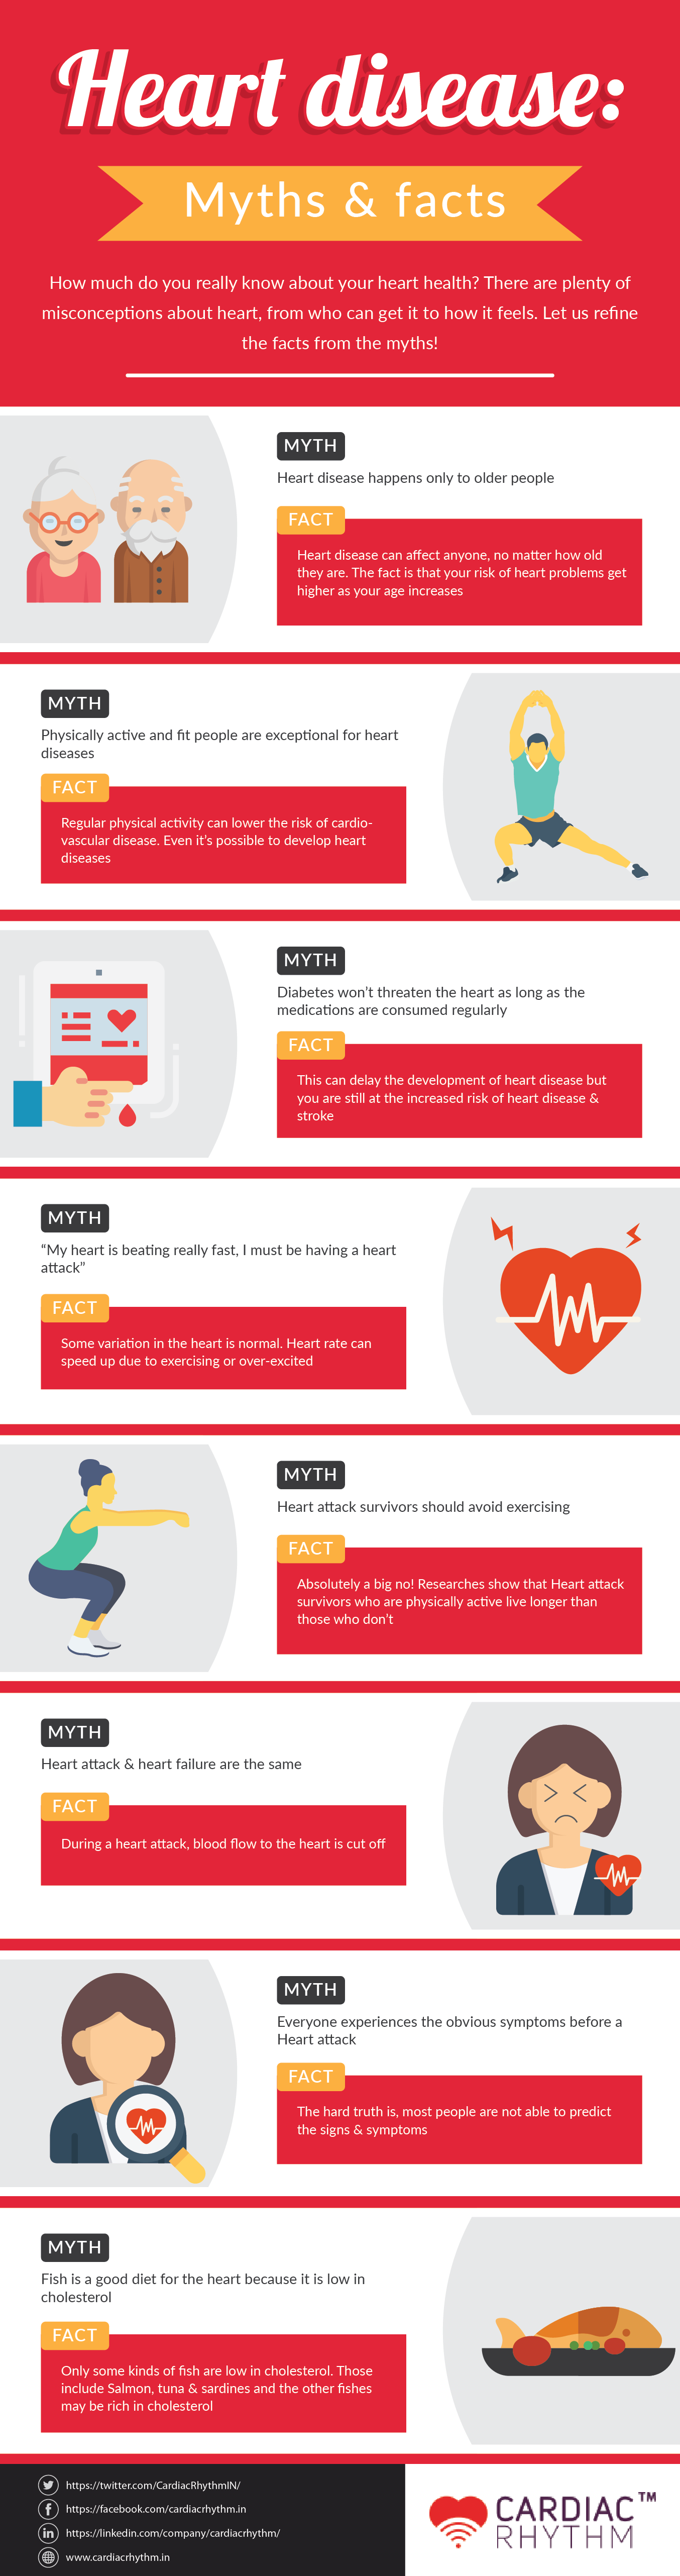 Heart disease: Myths & facts #infographic